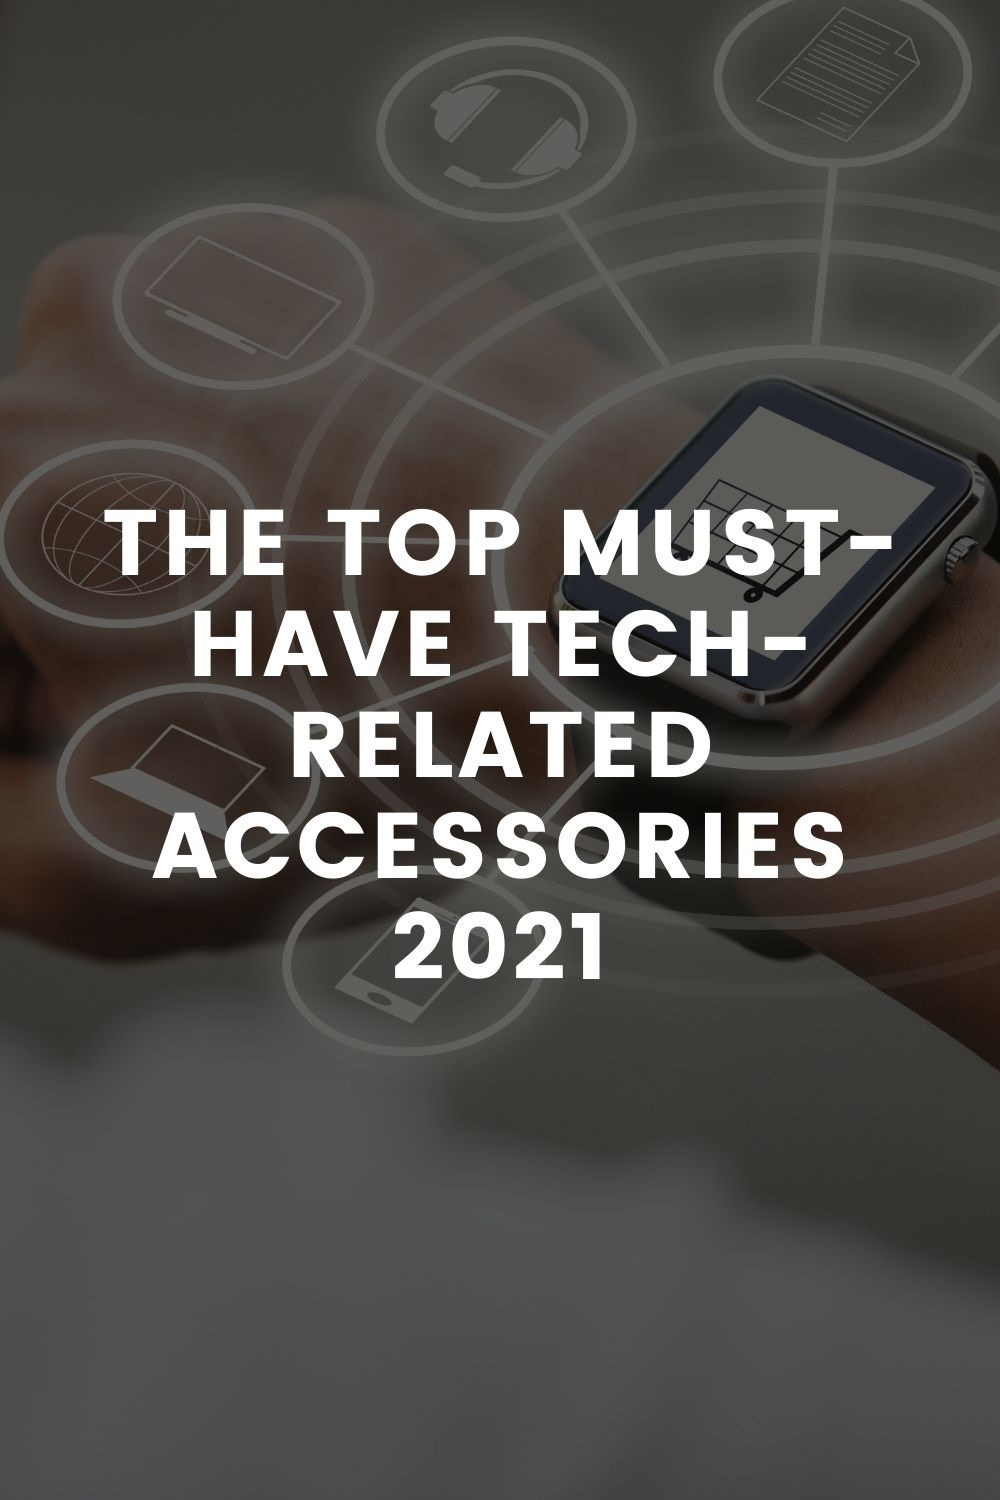 The Top Must-Have Tech-Related Accessories